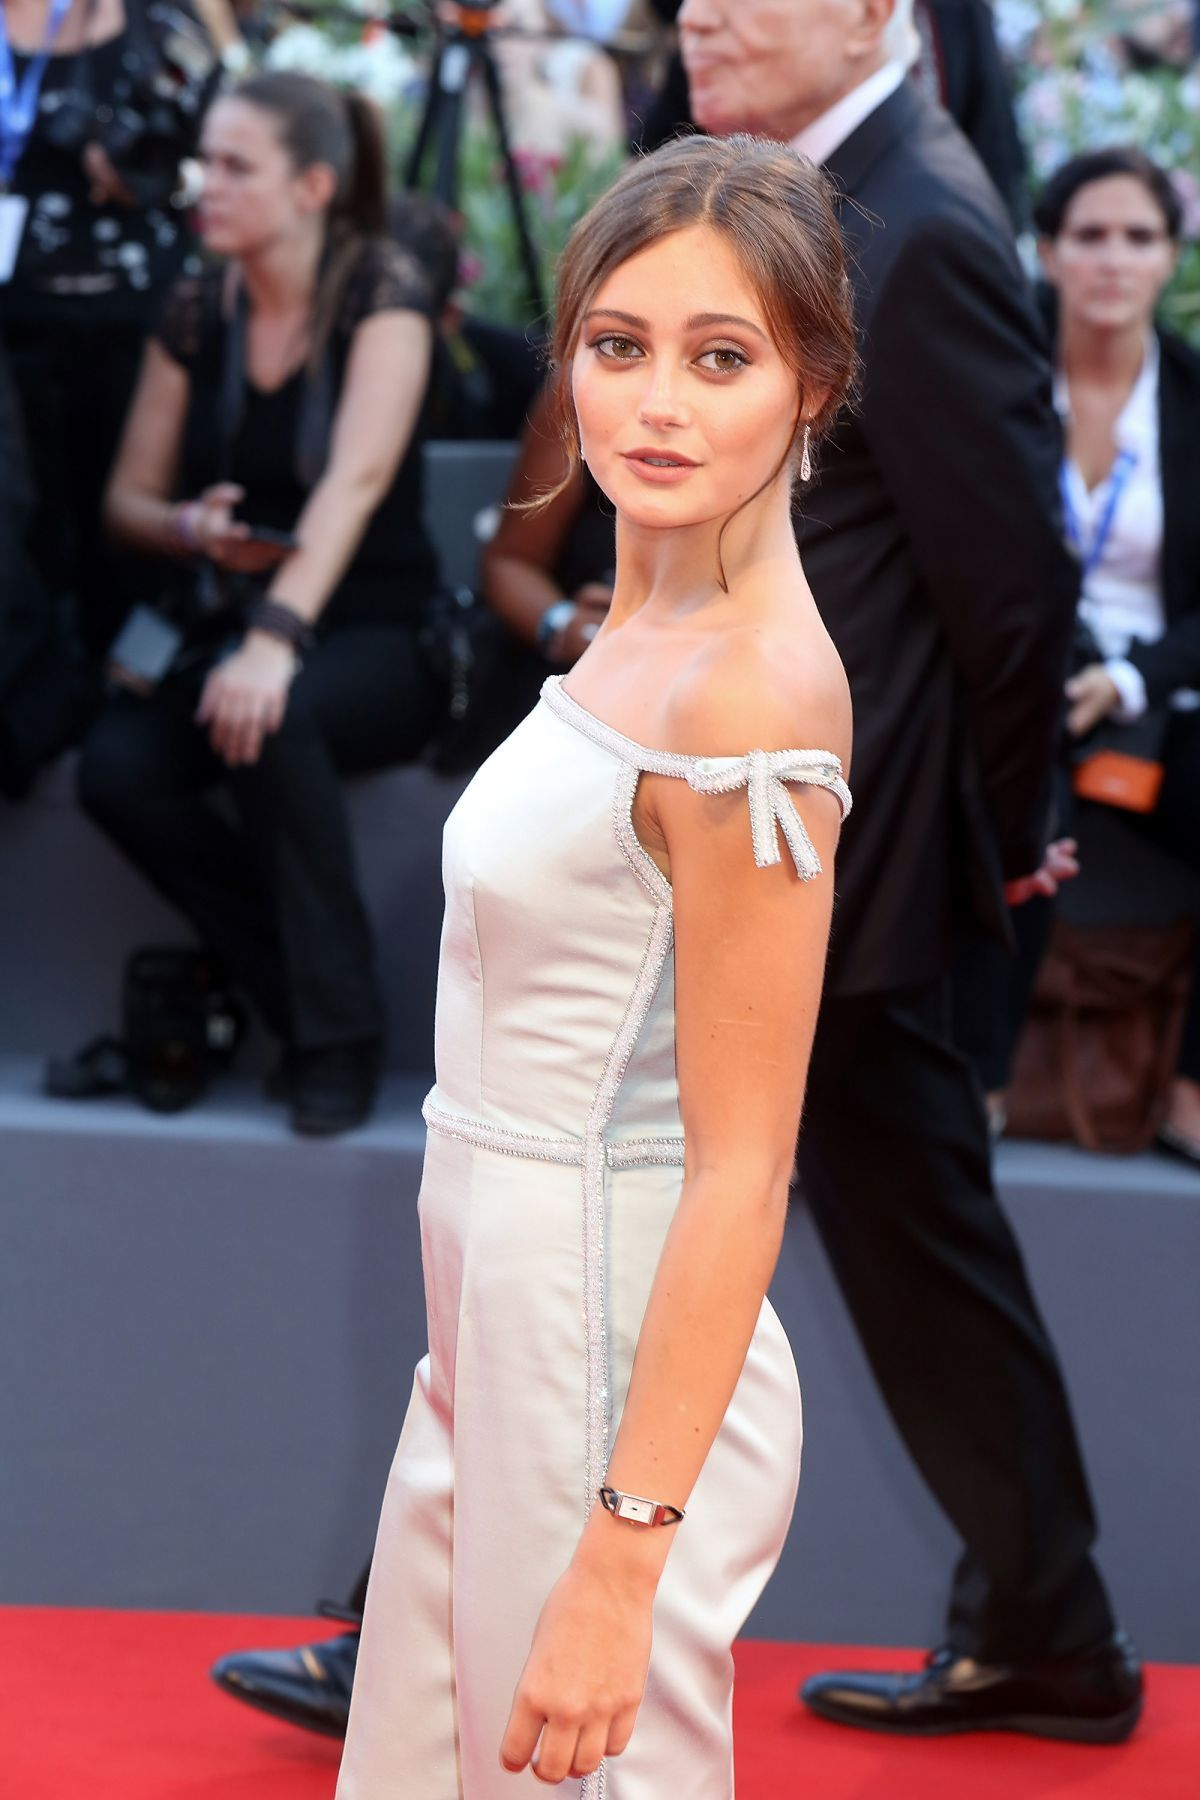 Cleavage Ella Purnell naked (82 photos), Is a cute